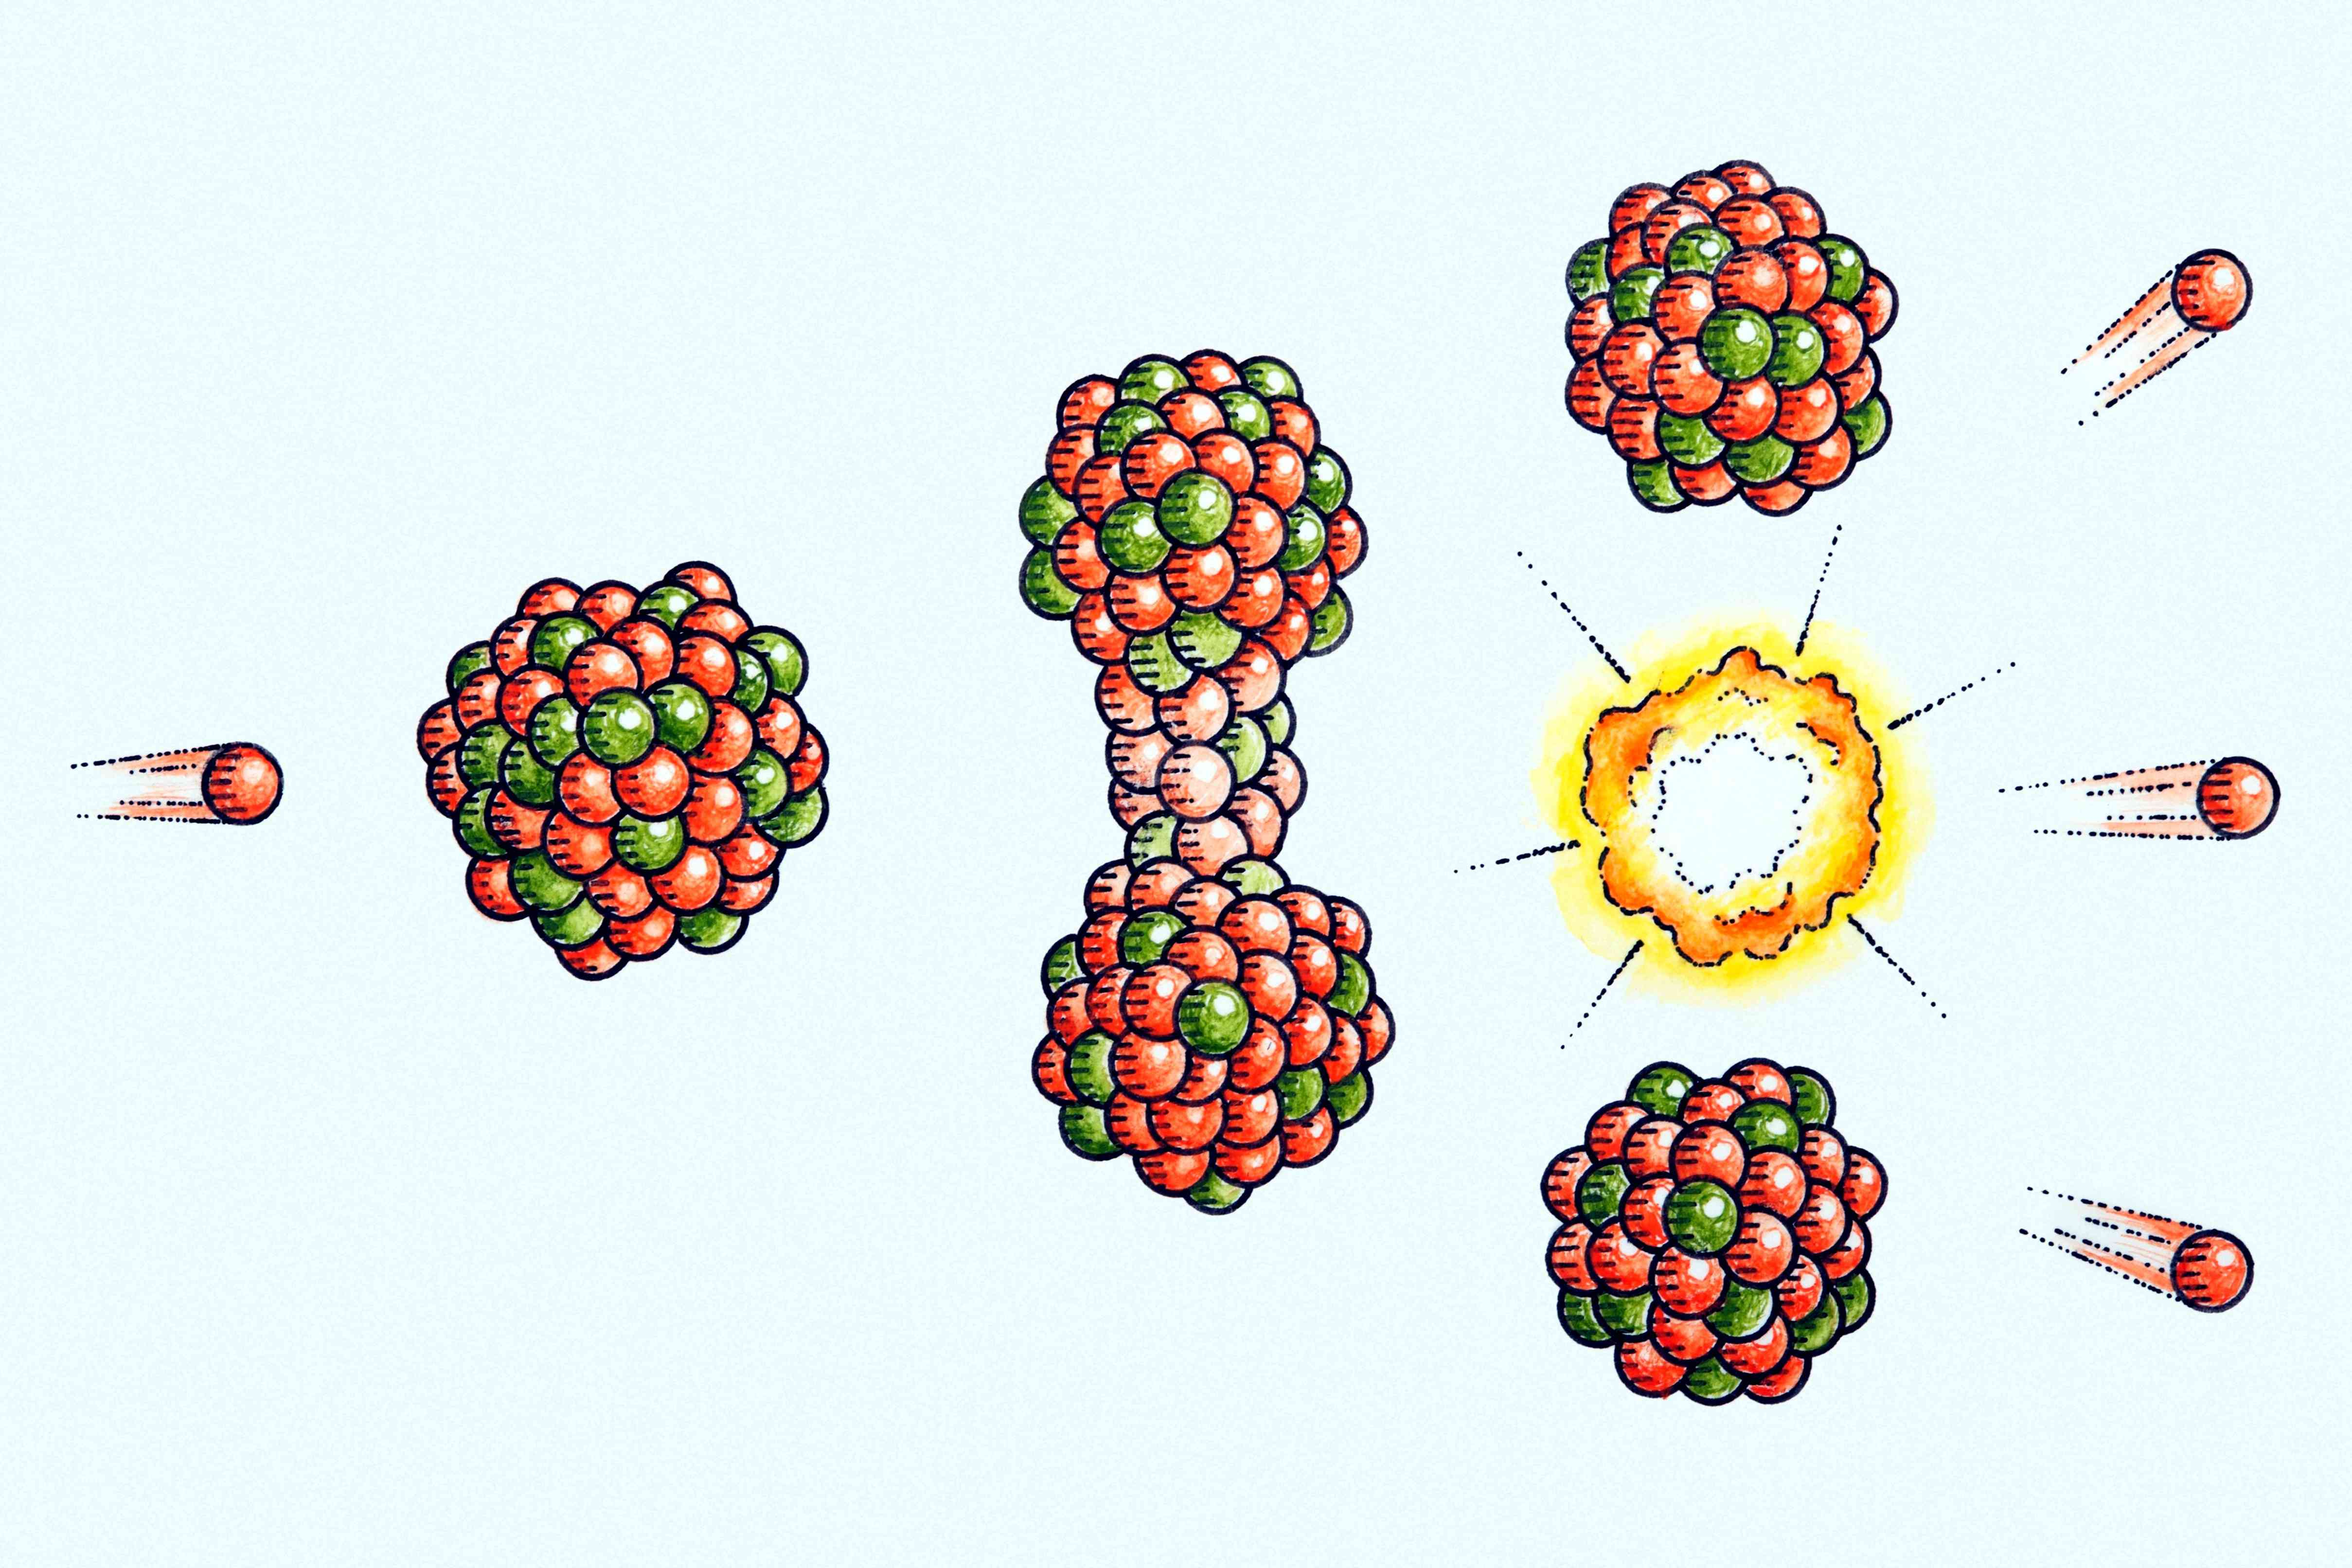 A neutron hits the nucleus of Uranium-235, which becomes unstable and splits to release energy and neutrons